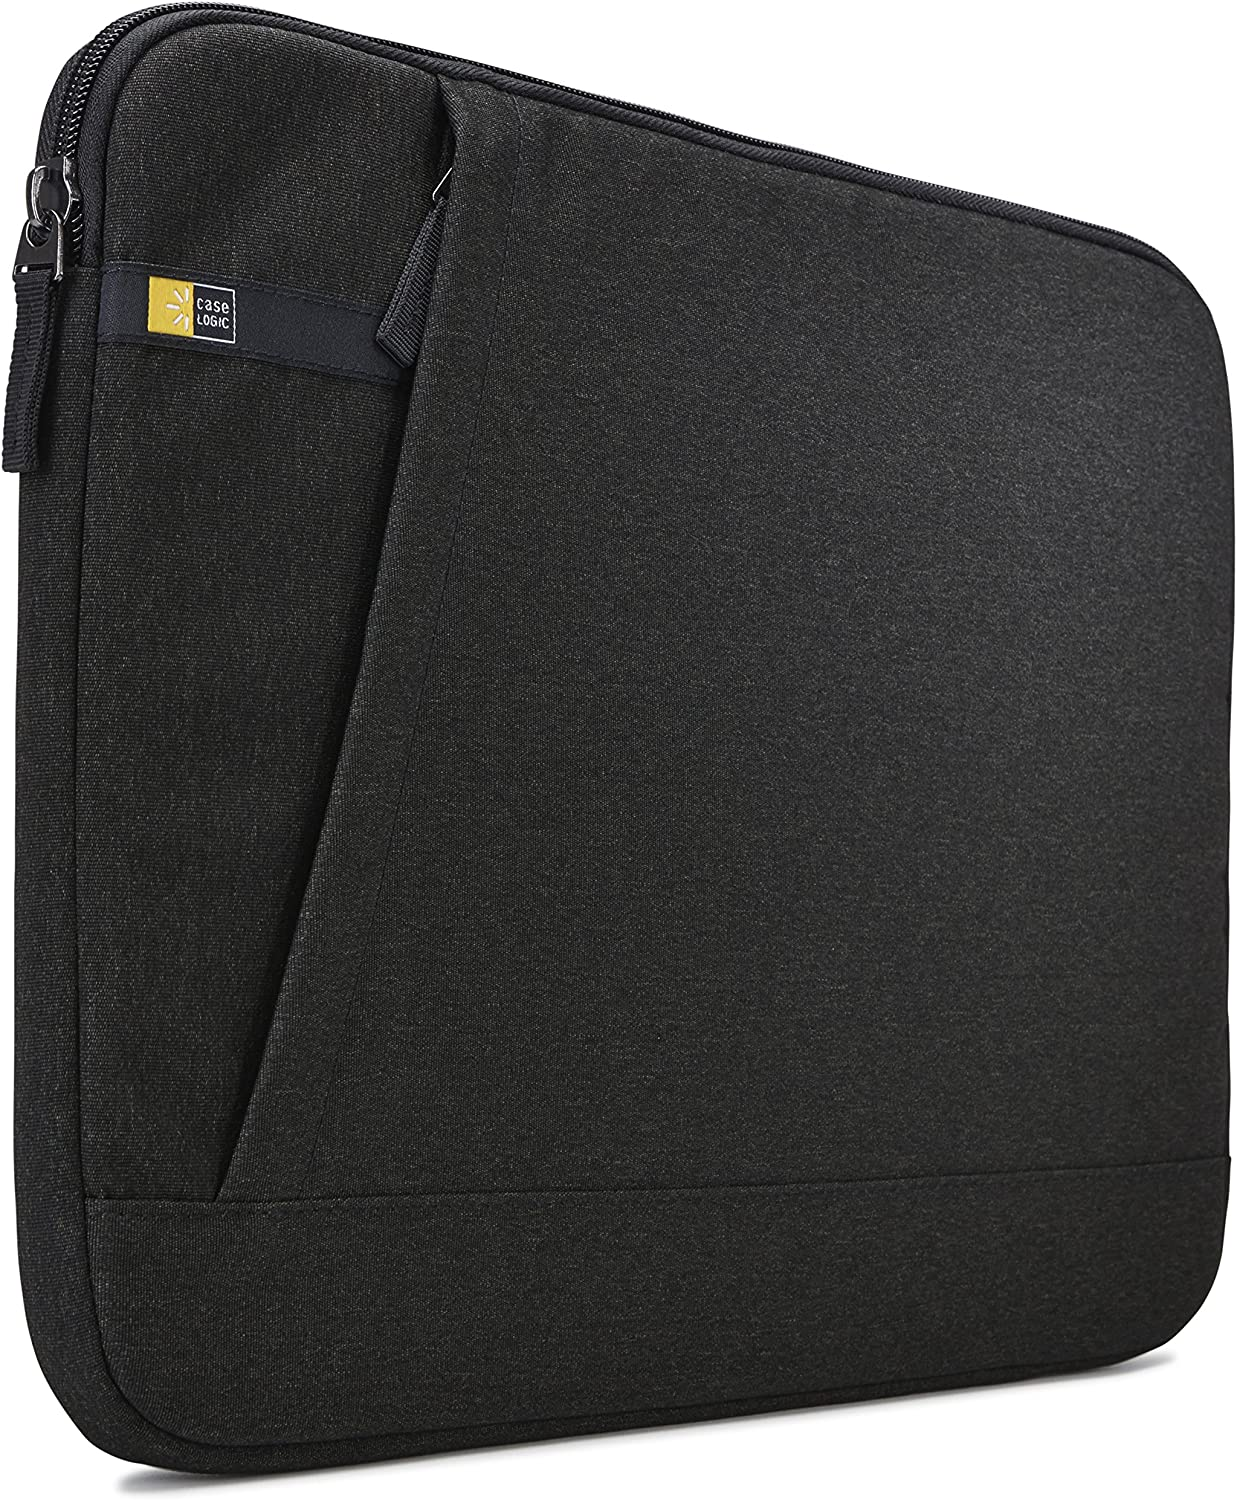 Case Logic Huxton15.6 Laptop Sleeve (HUXS-115BLK)